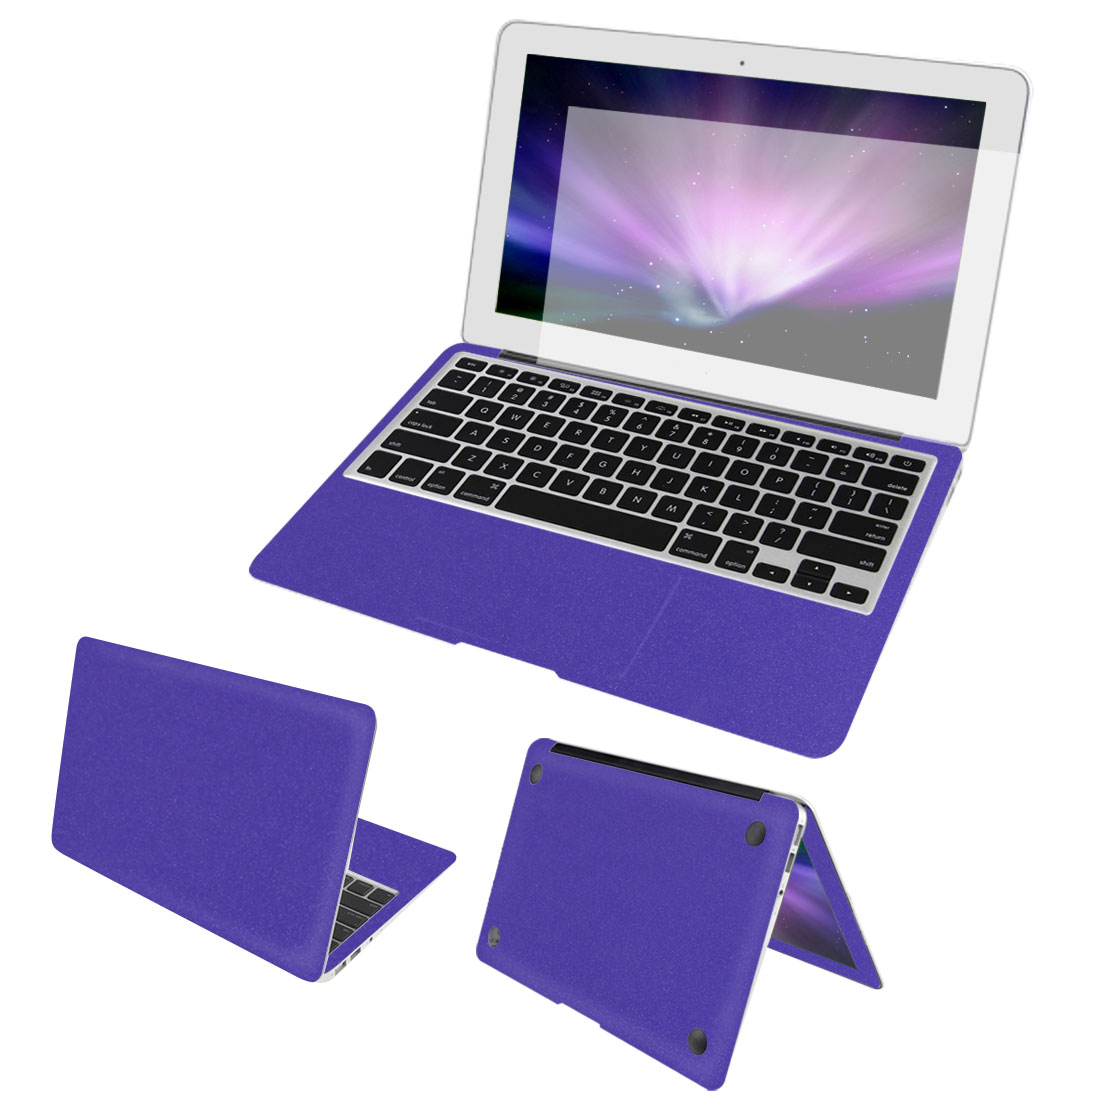 Purple Full Body Wrap Protector Decal Skin Cover Screen Film for Macbook Air 13""